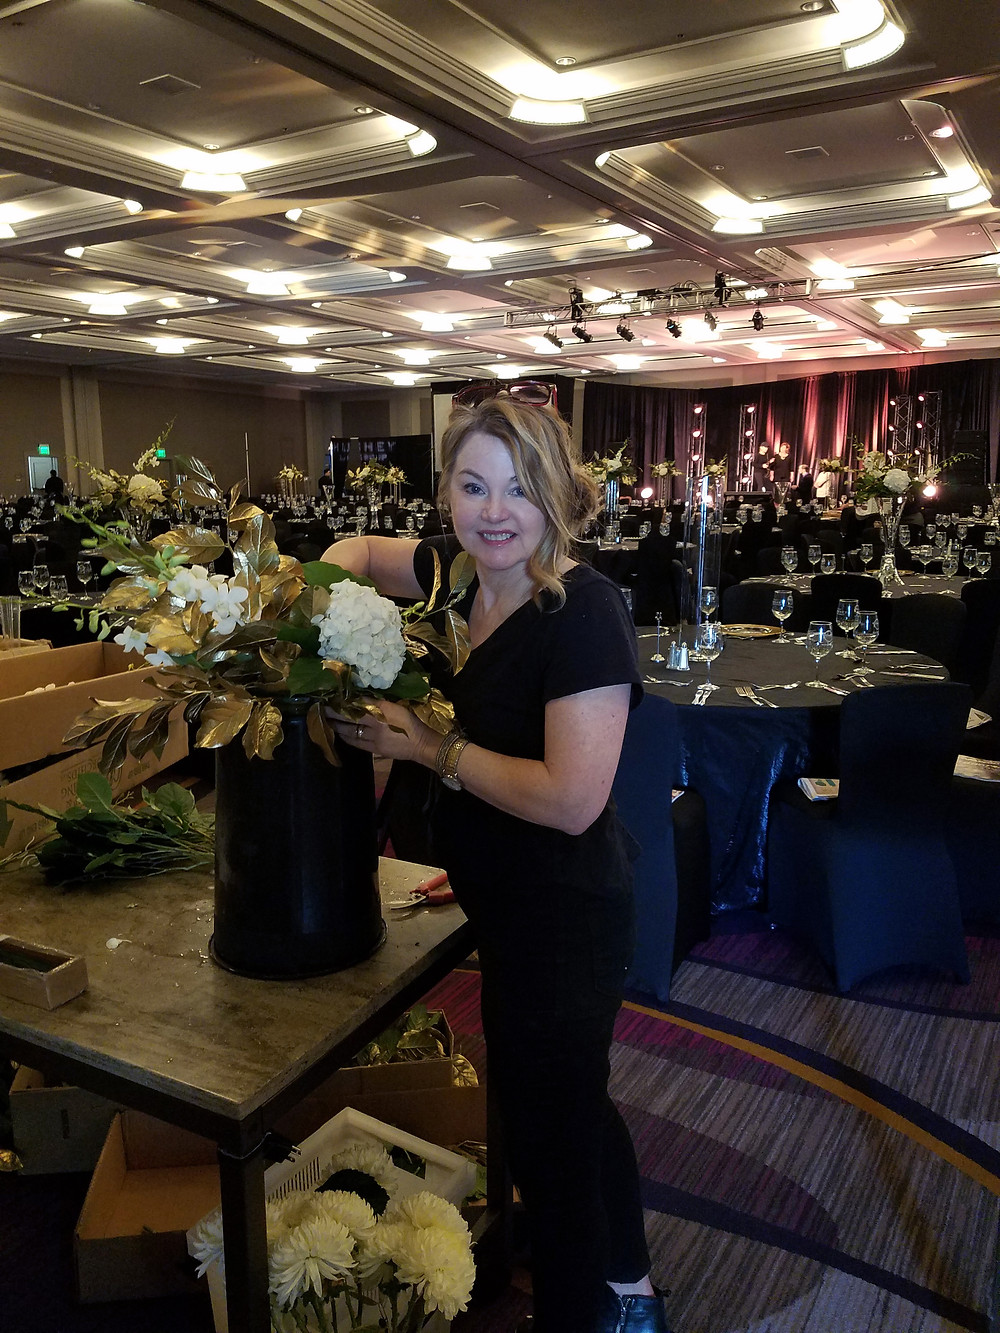 Cathy Brooks setting up florals for Make-A-Wish Foundation